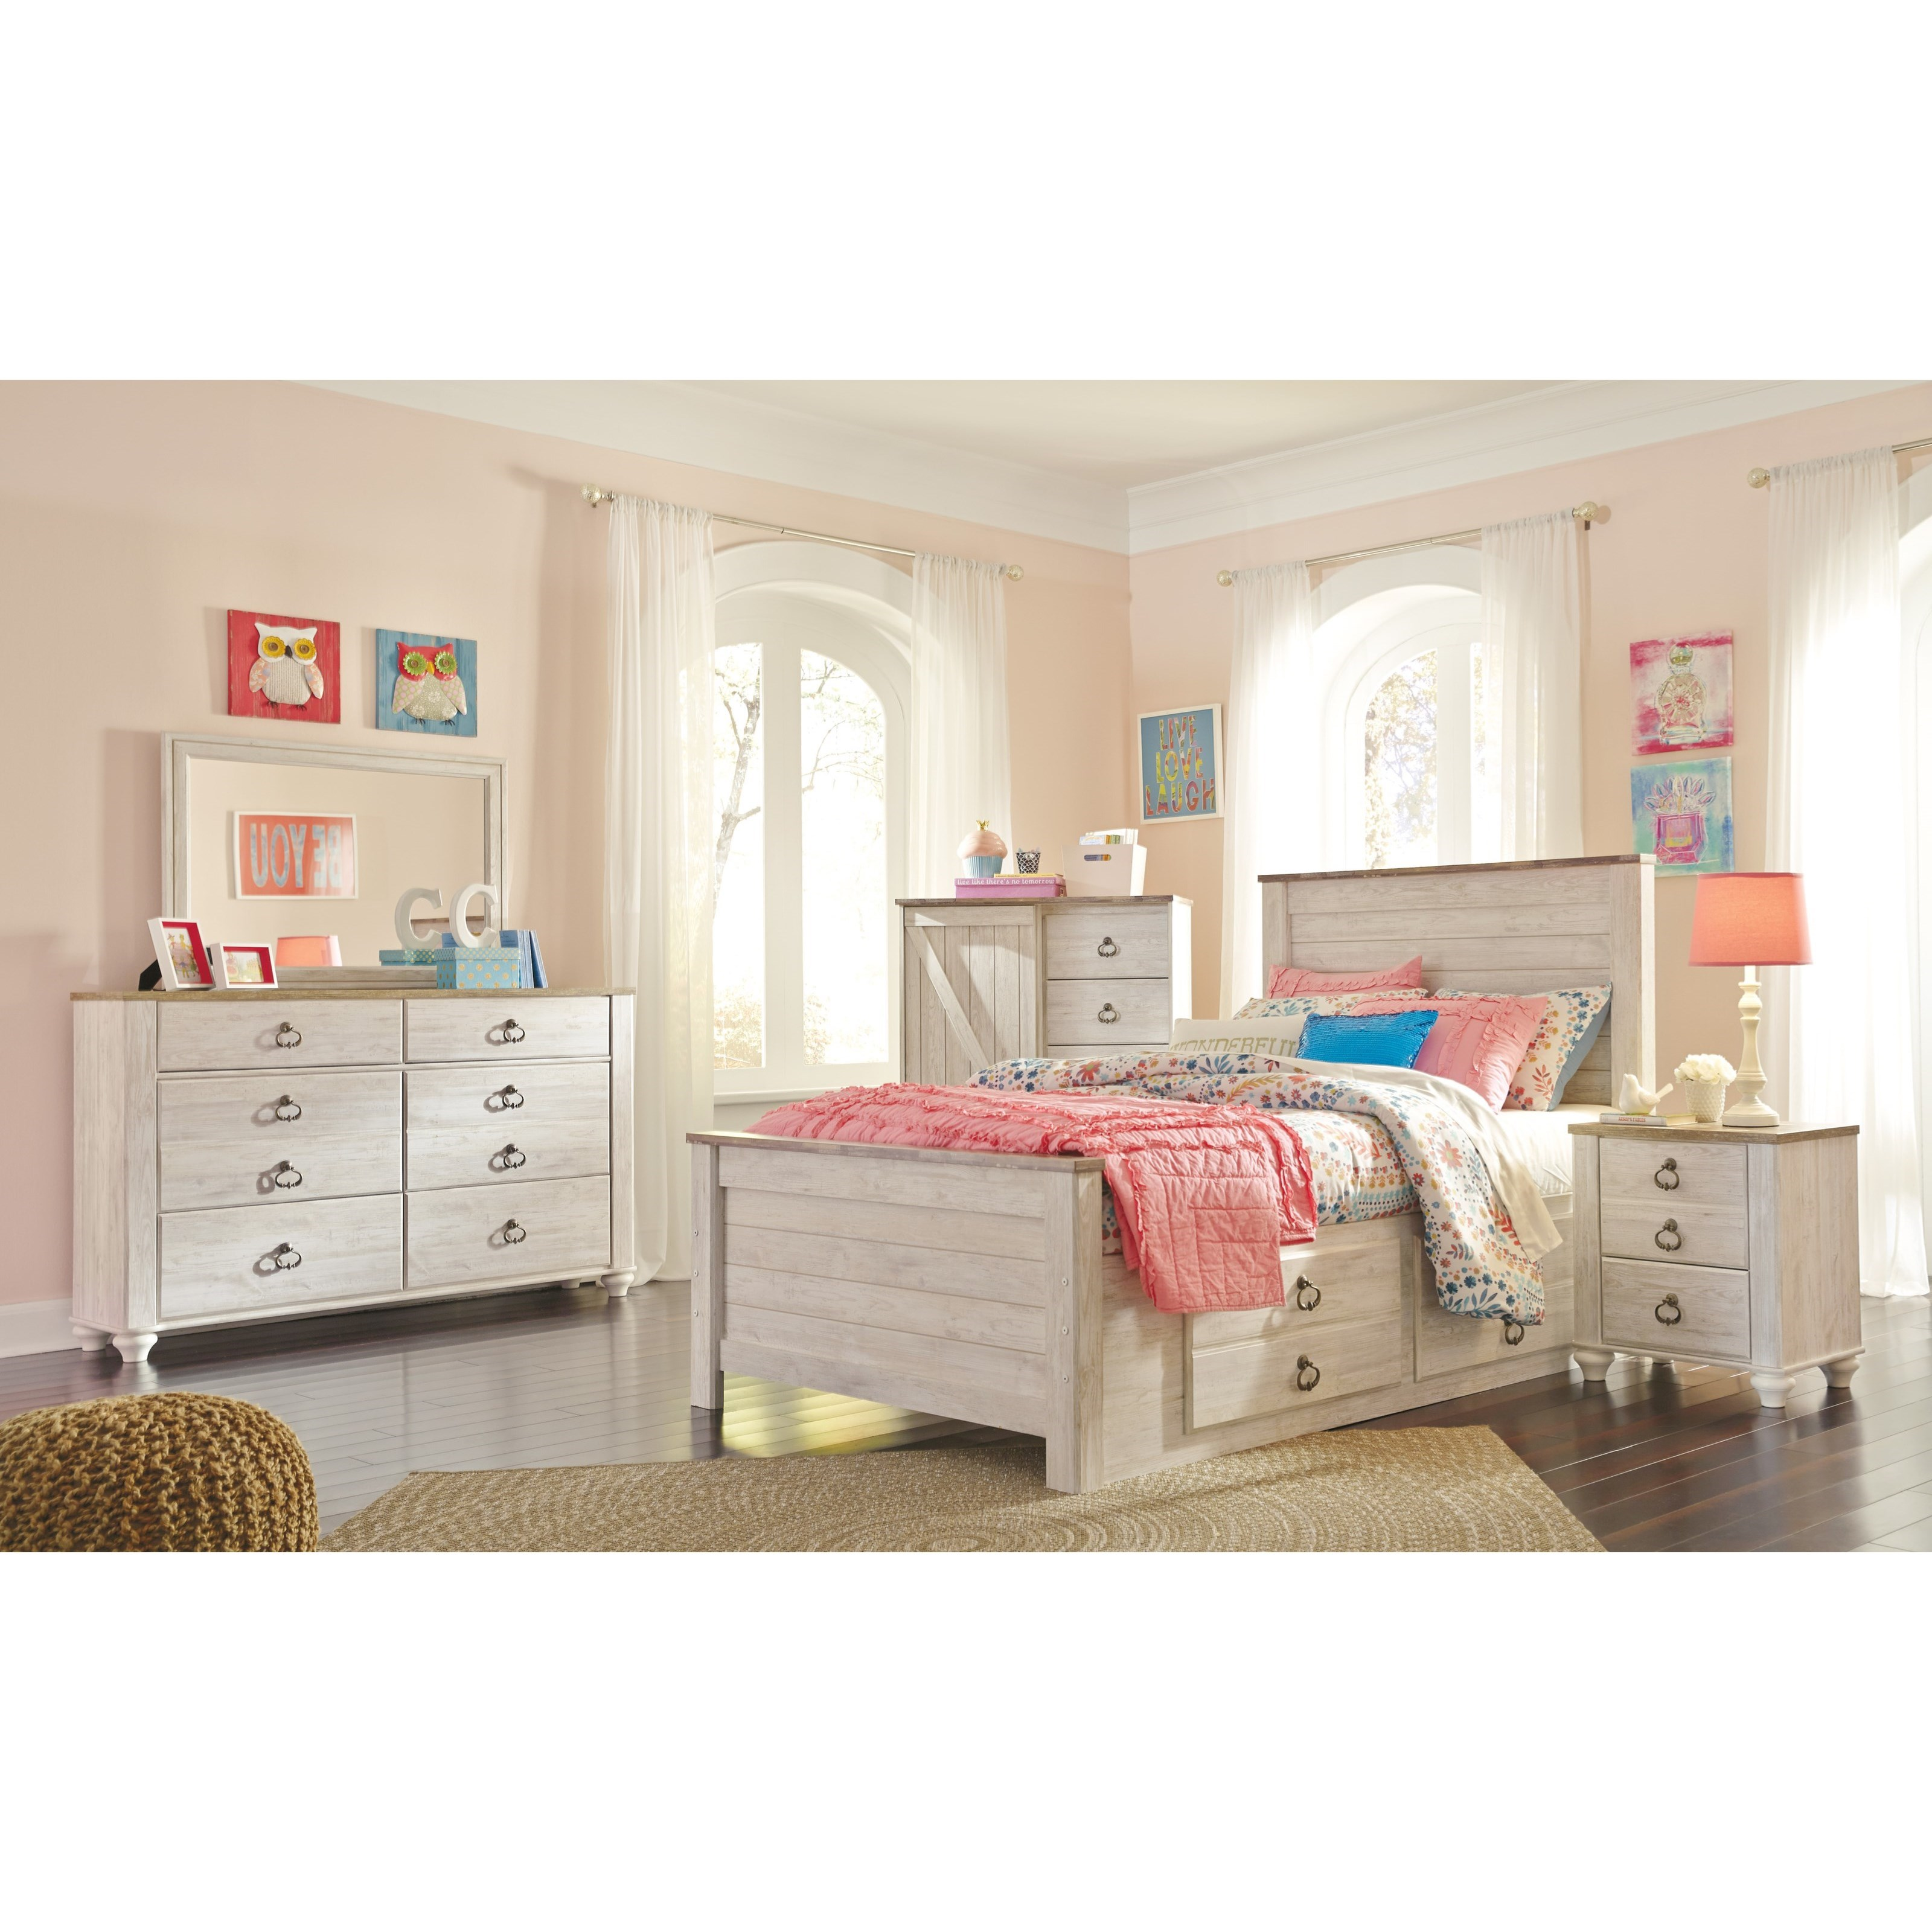 Signature design by ashley willowton full bed with - Ashley furniture full bedroom sets ...